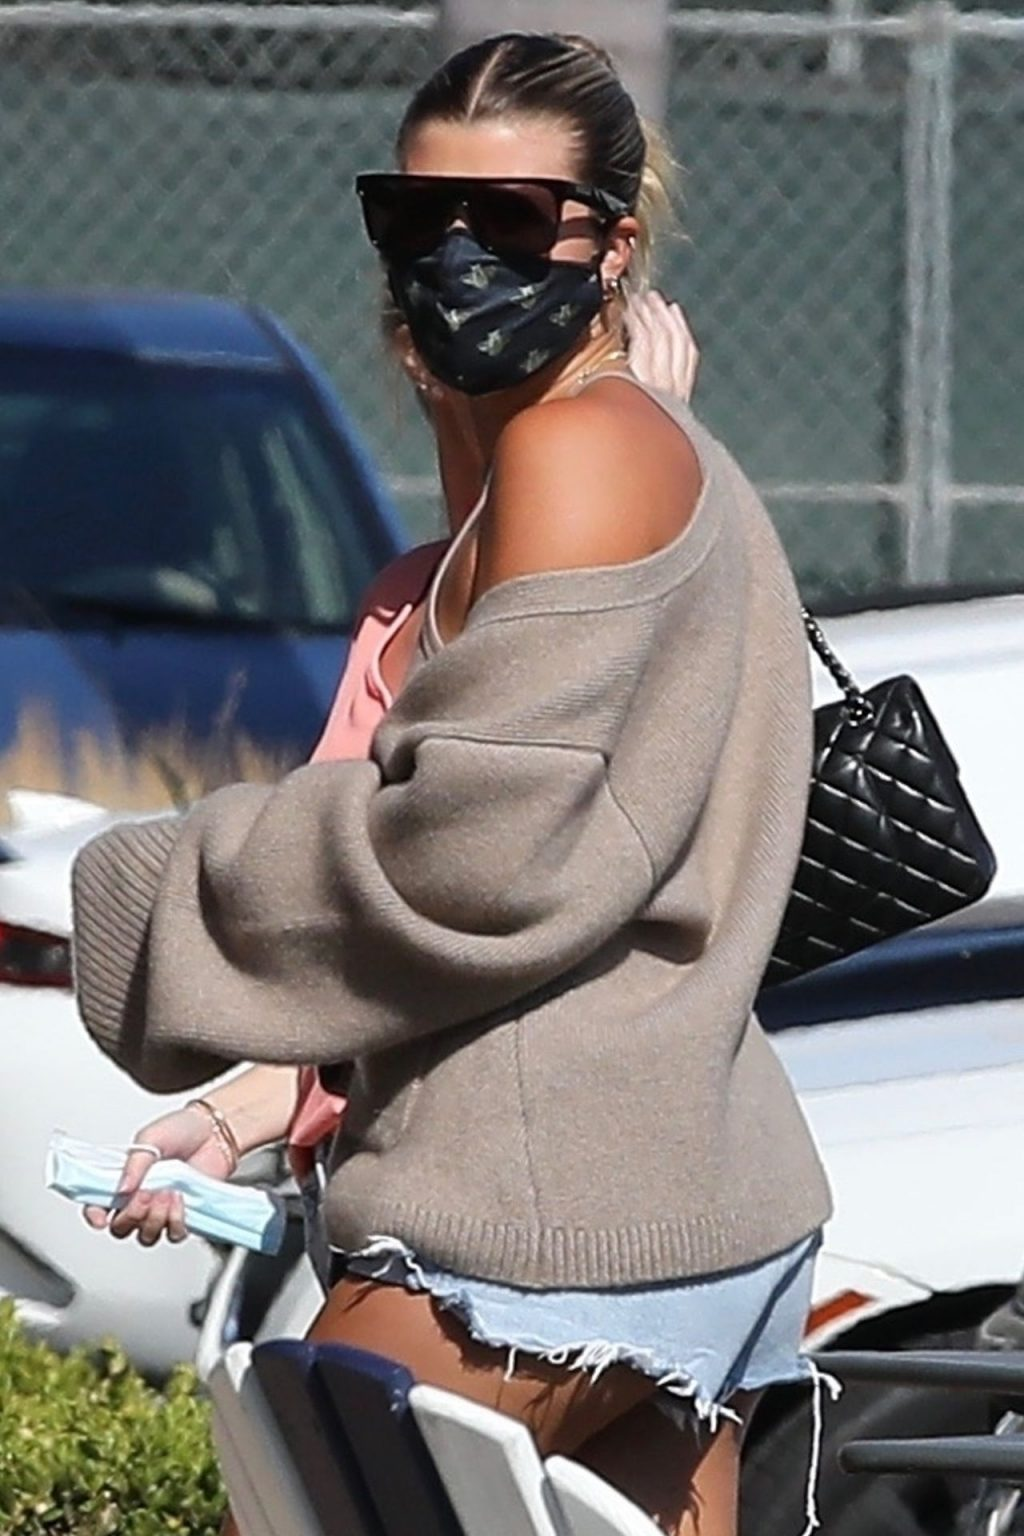 Leggy Sofia Richie Shops with Friends at the Malibu Country Mart (Photos)